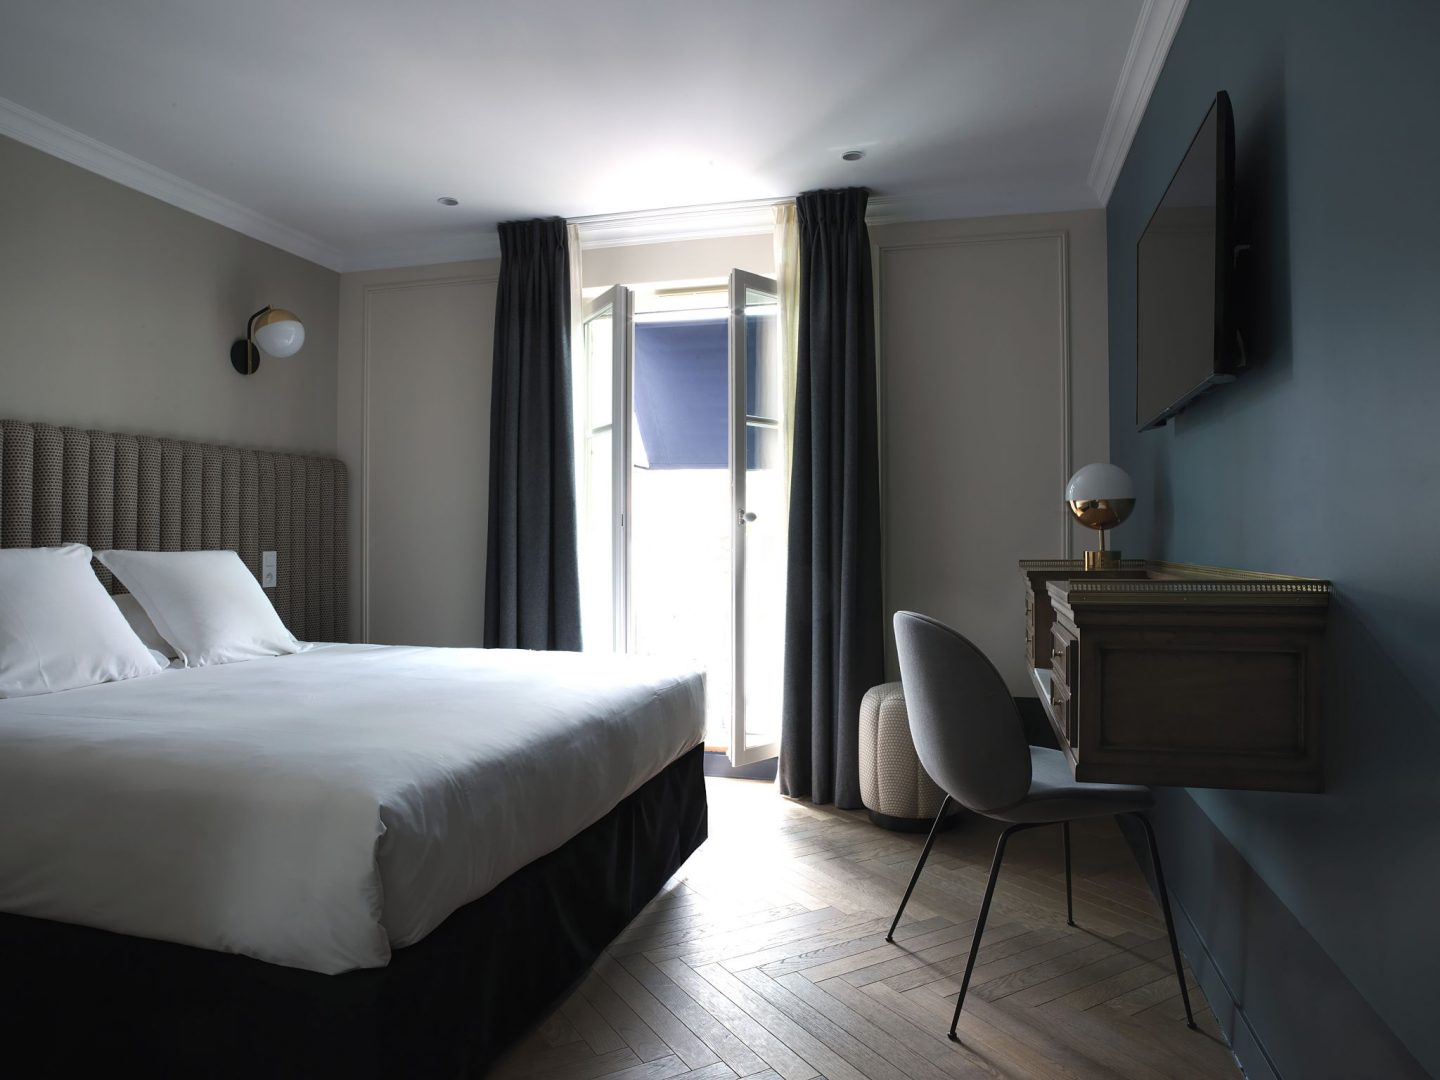 Swoonworthy Paris Hotels for the Design Tourist, Design Tourist, interiors, Hotel Bachaumont, Dorothée Meilichzon